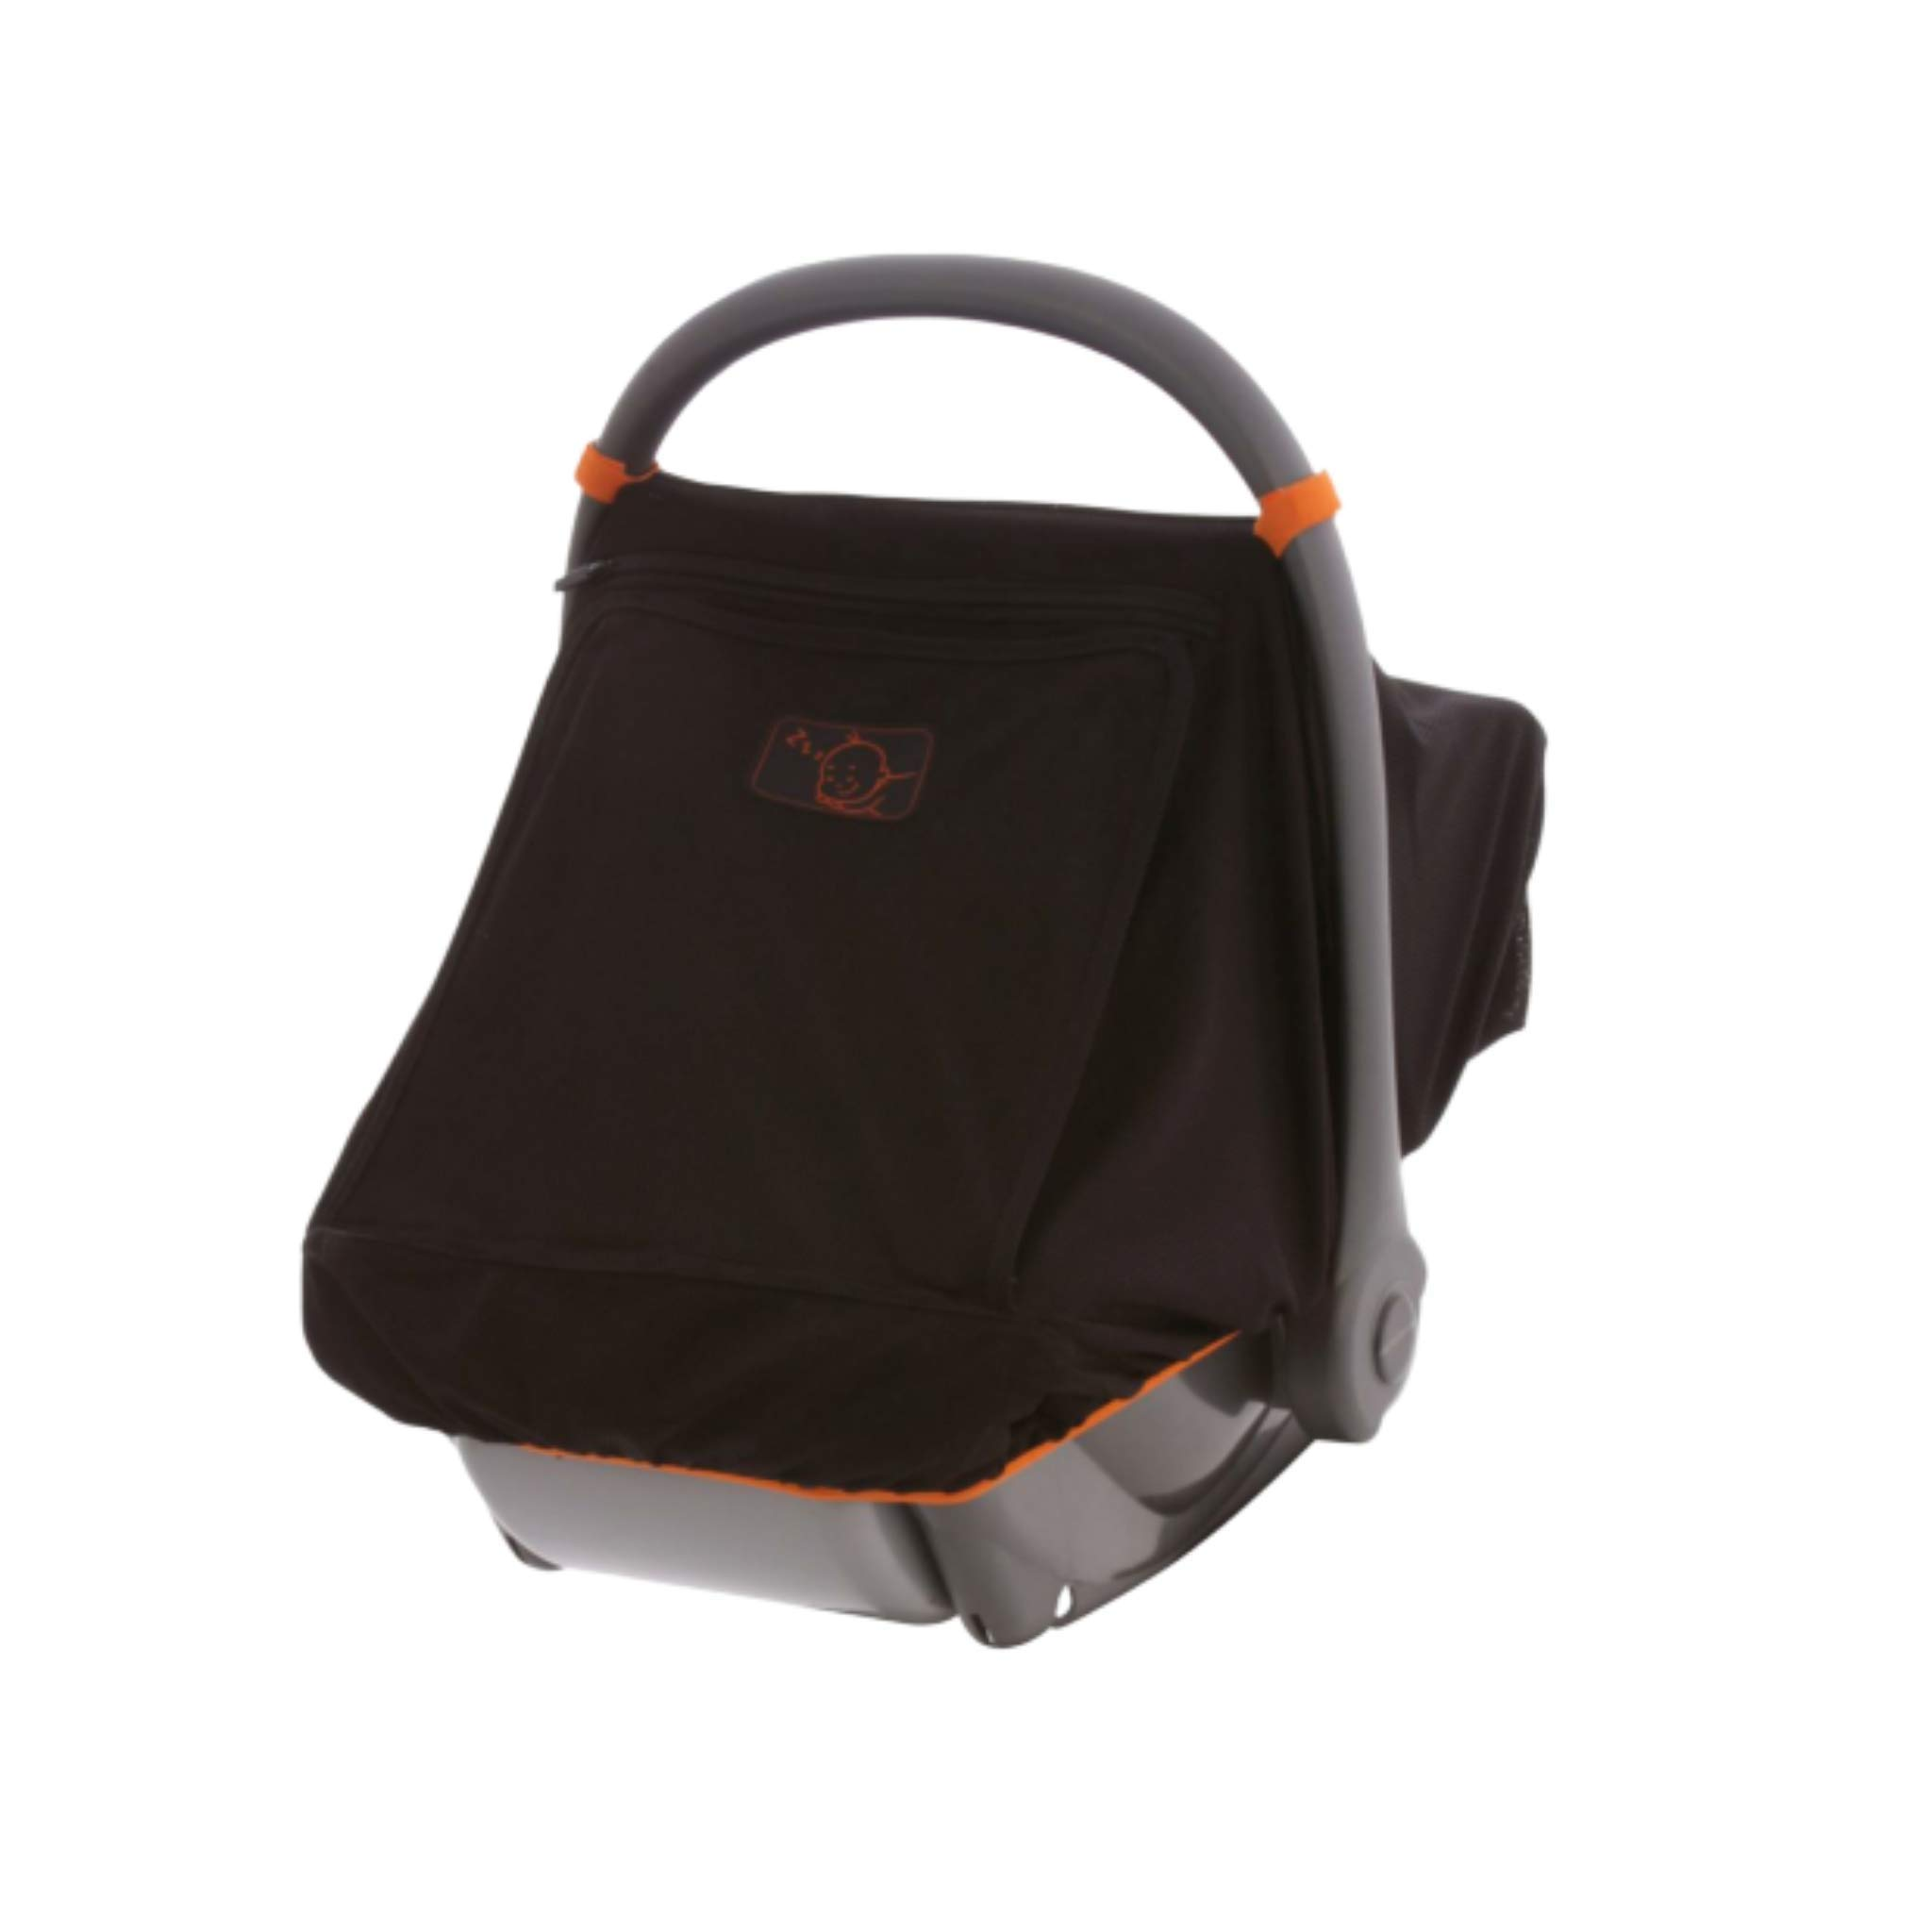 Universal Infant Car Seat Sun Cover | Blocks 99% of UV | Unisex Mesh Baby Car Seat Canopy | Peekaboo Window | Gives 360 Degree Protection